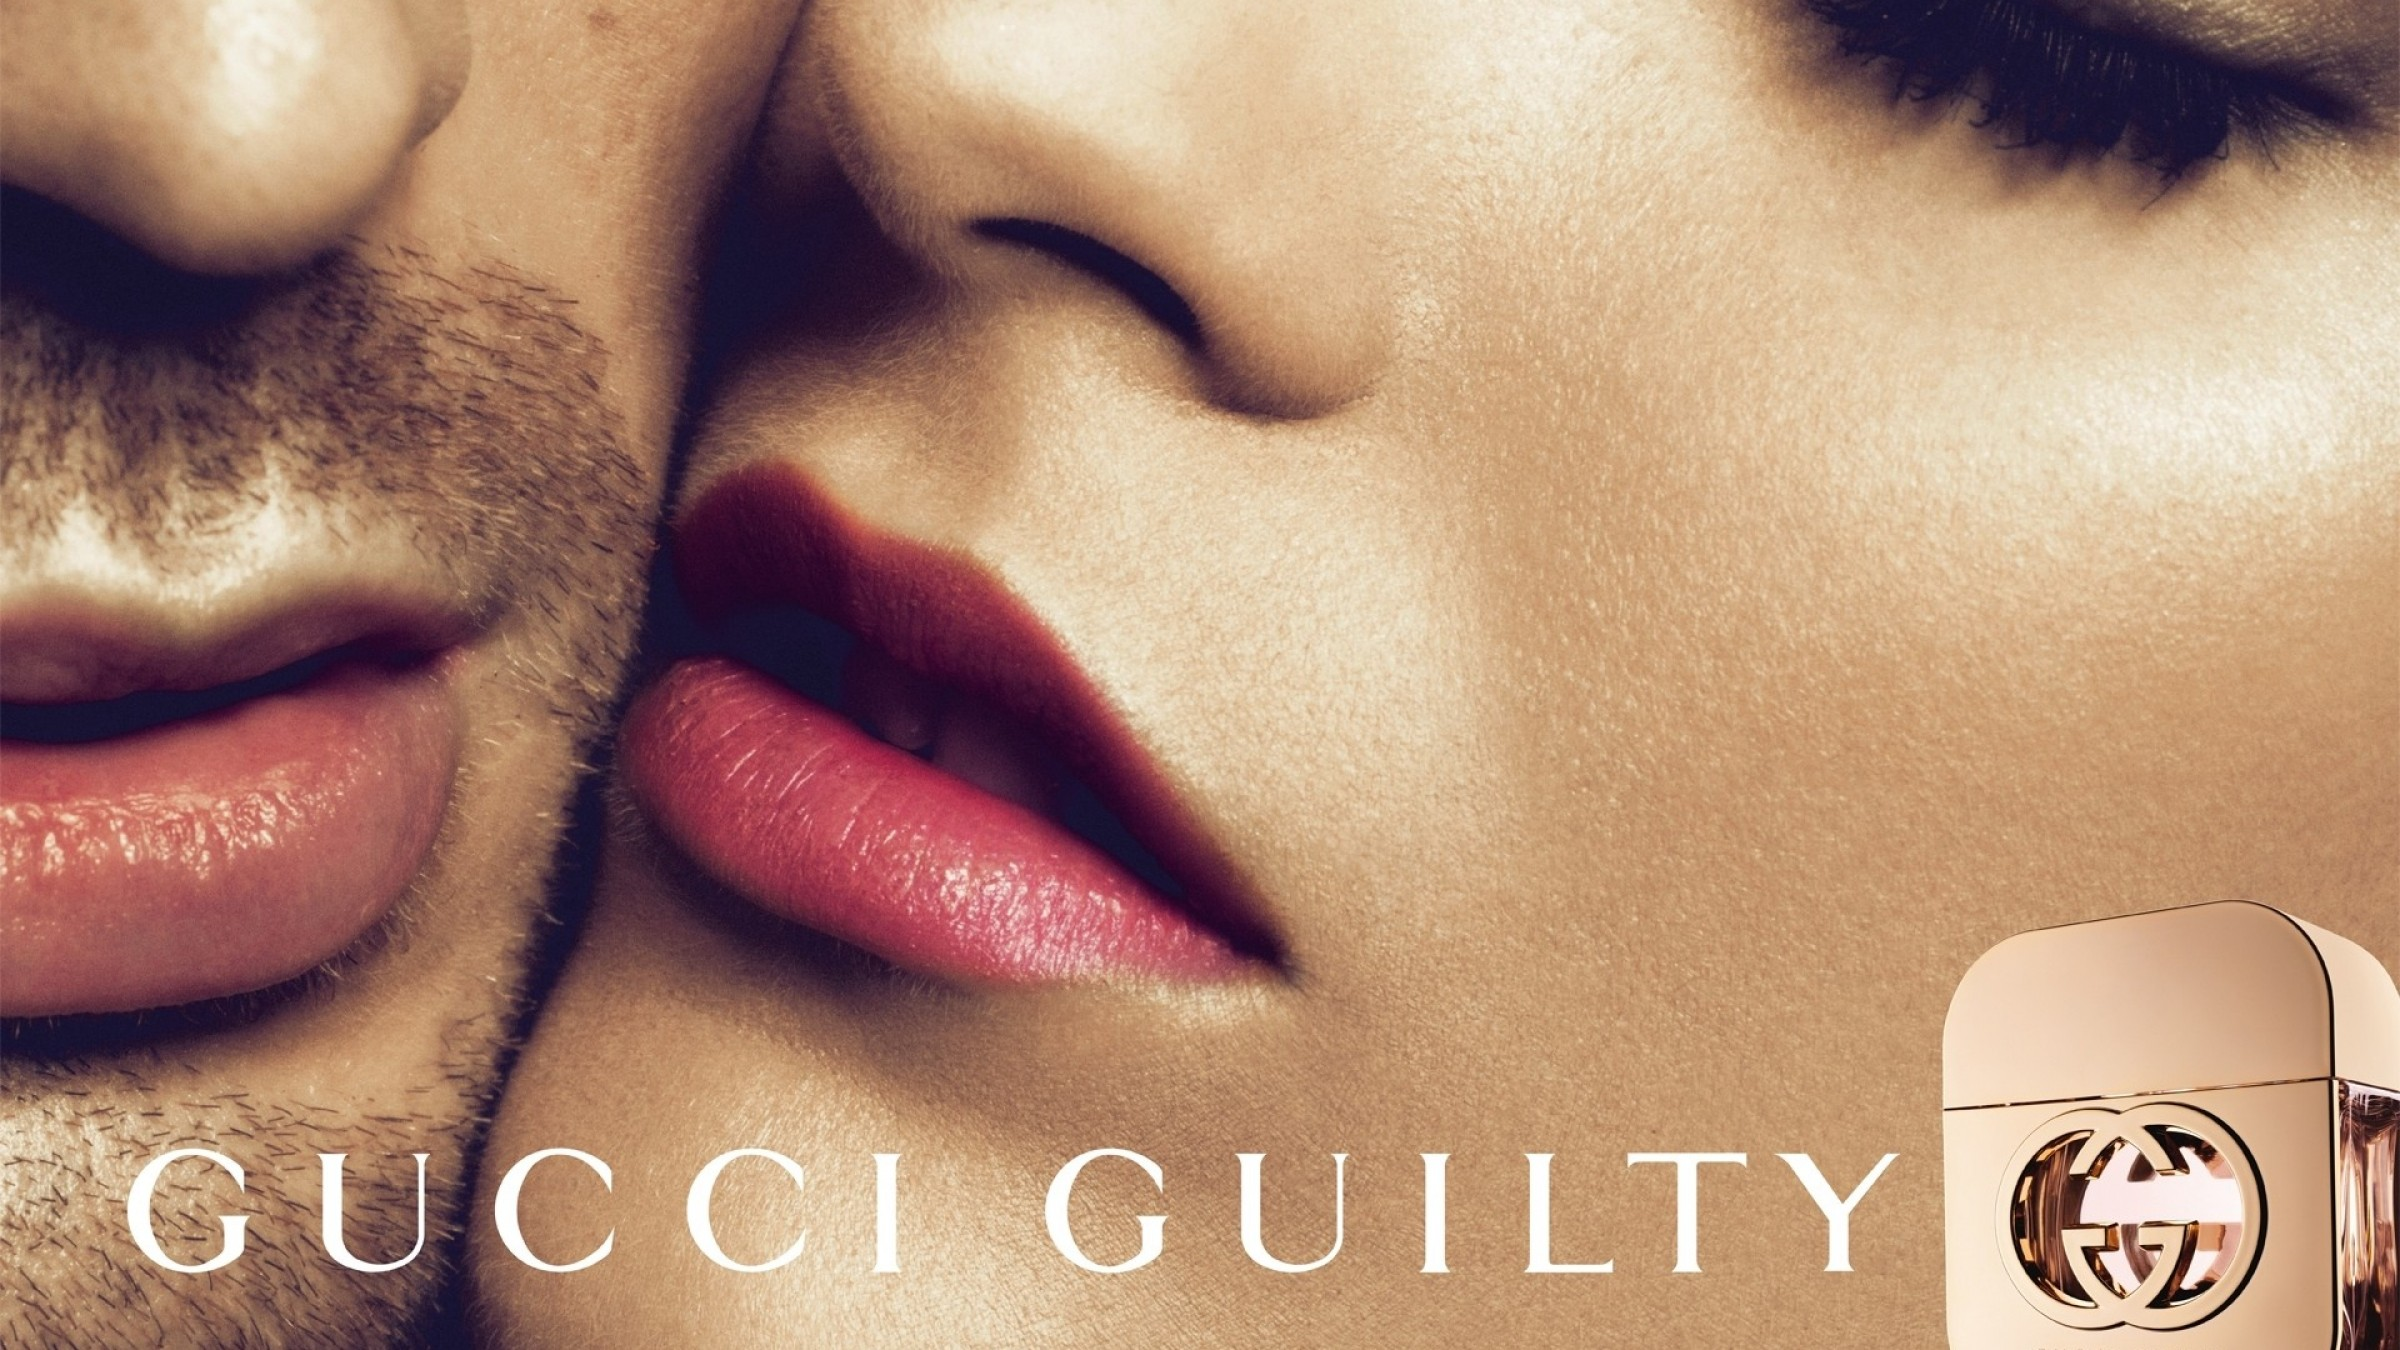 Gucci Guilty Cara Fregrance Perfume Toque Menina Download Free Wallpapers HD